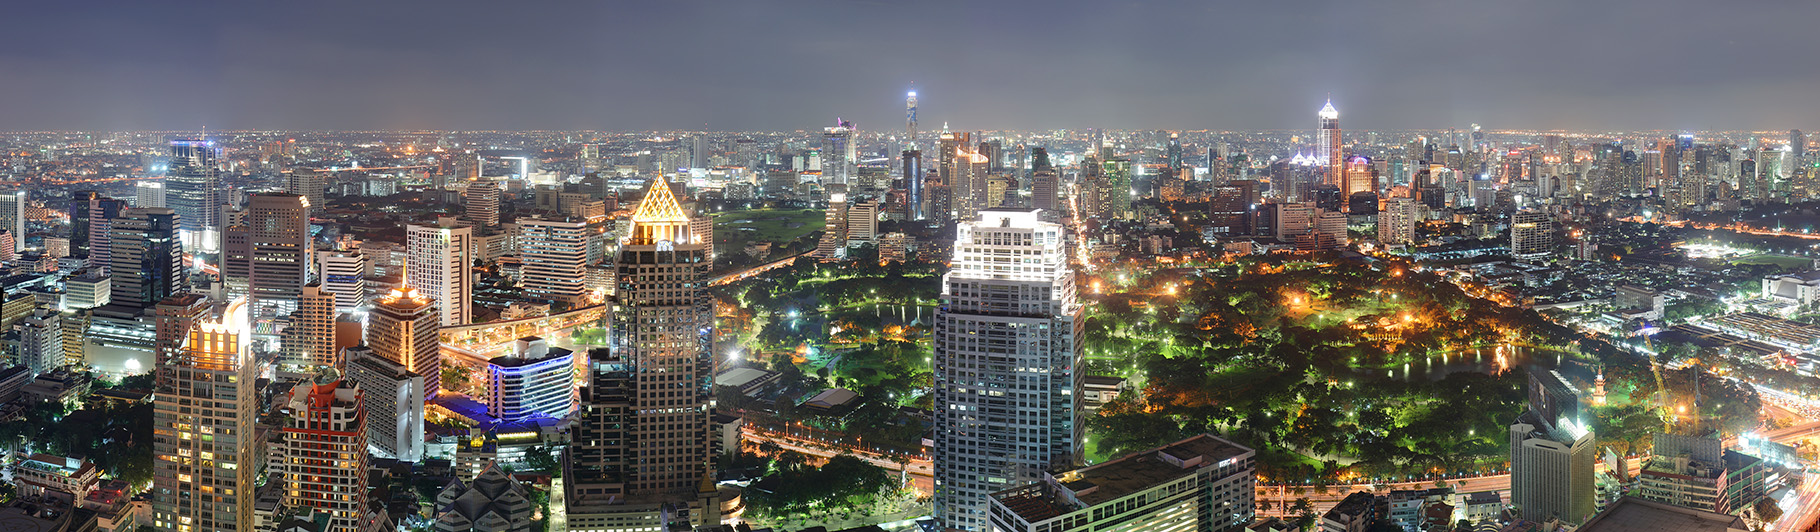 Bangkok_Night_Wikimedia_Commons